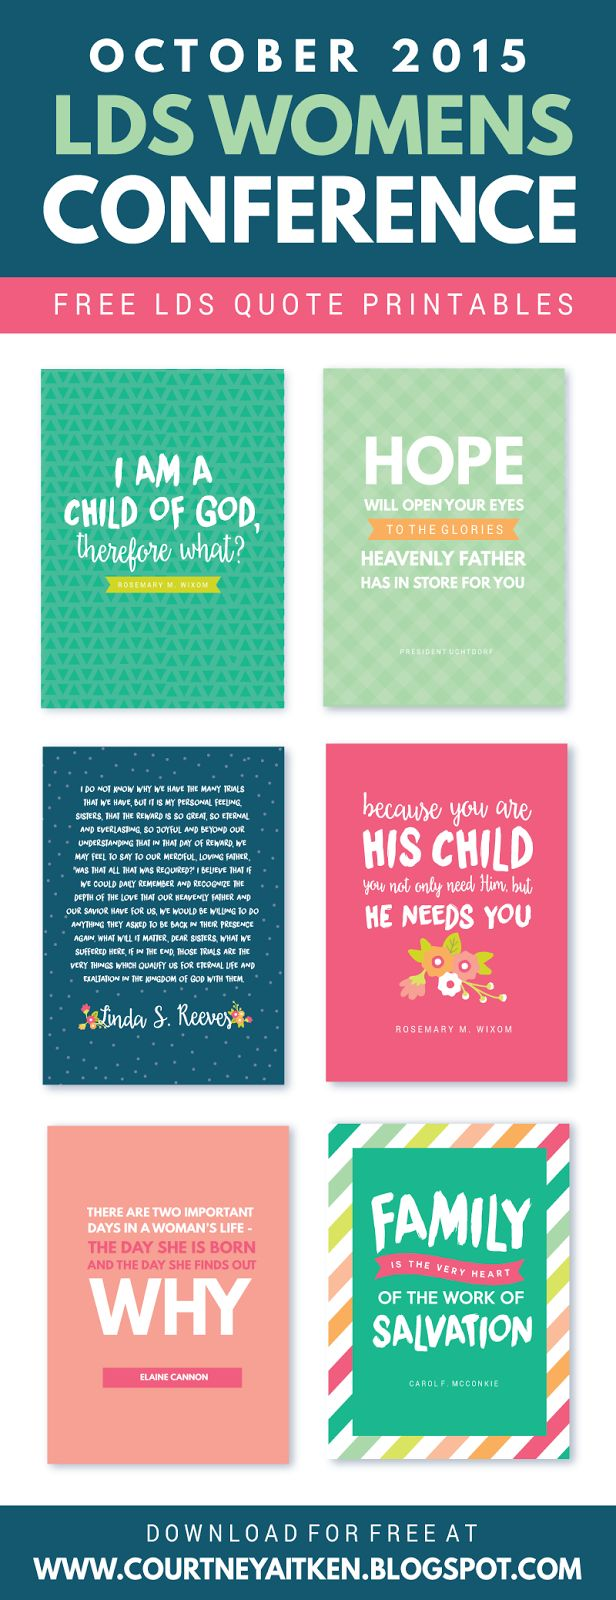 LDS Womens Conference FREE Printables (October 2015)